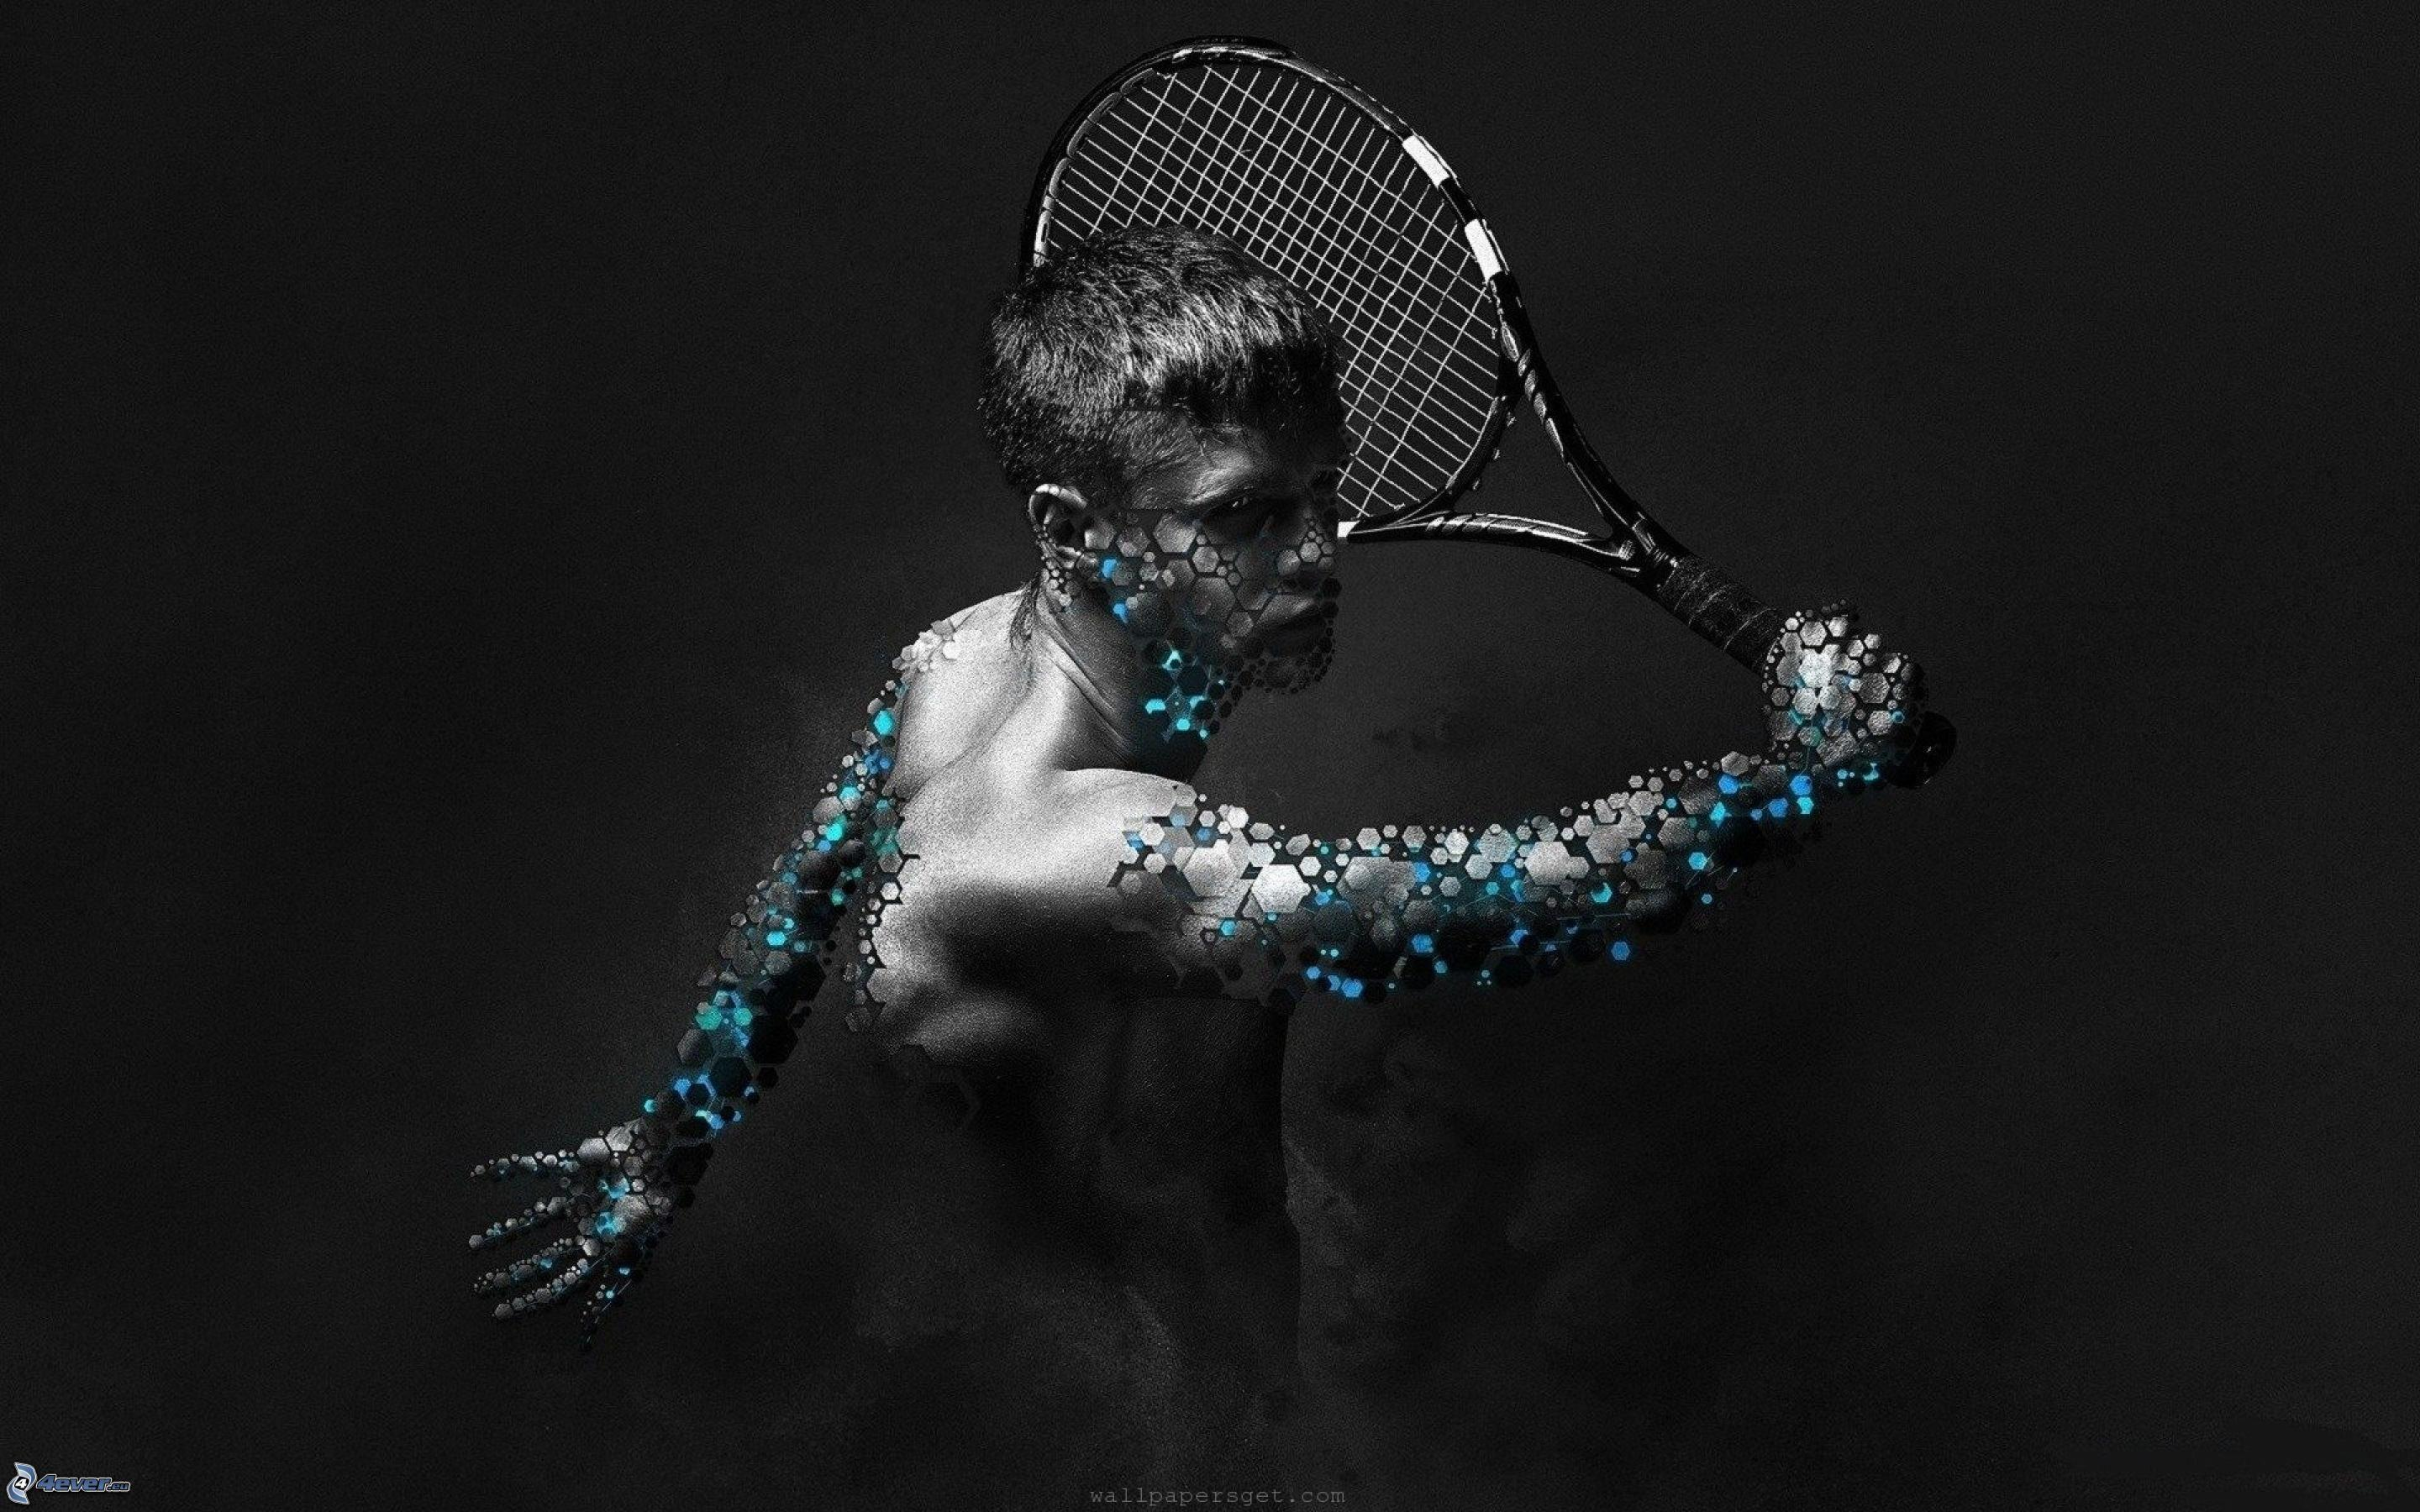 Badminton Wallpapers Page 1